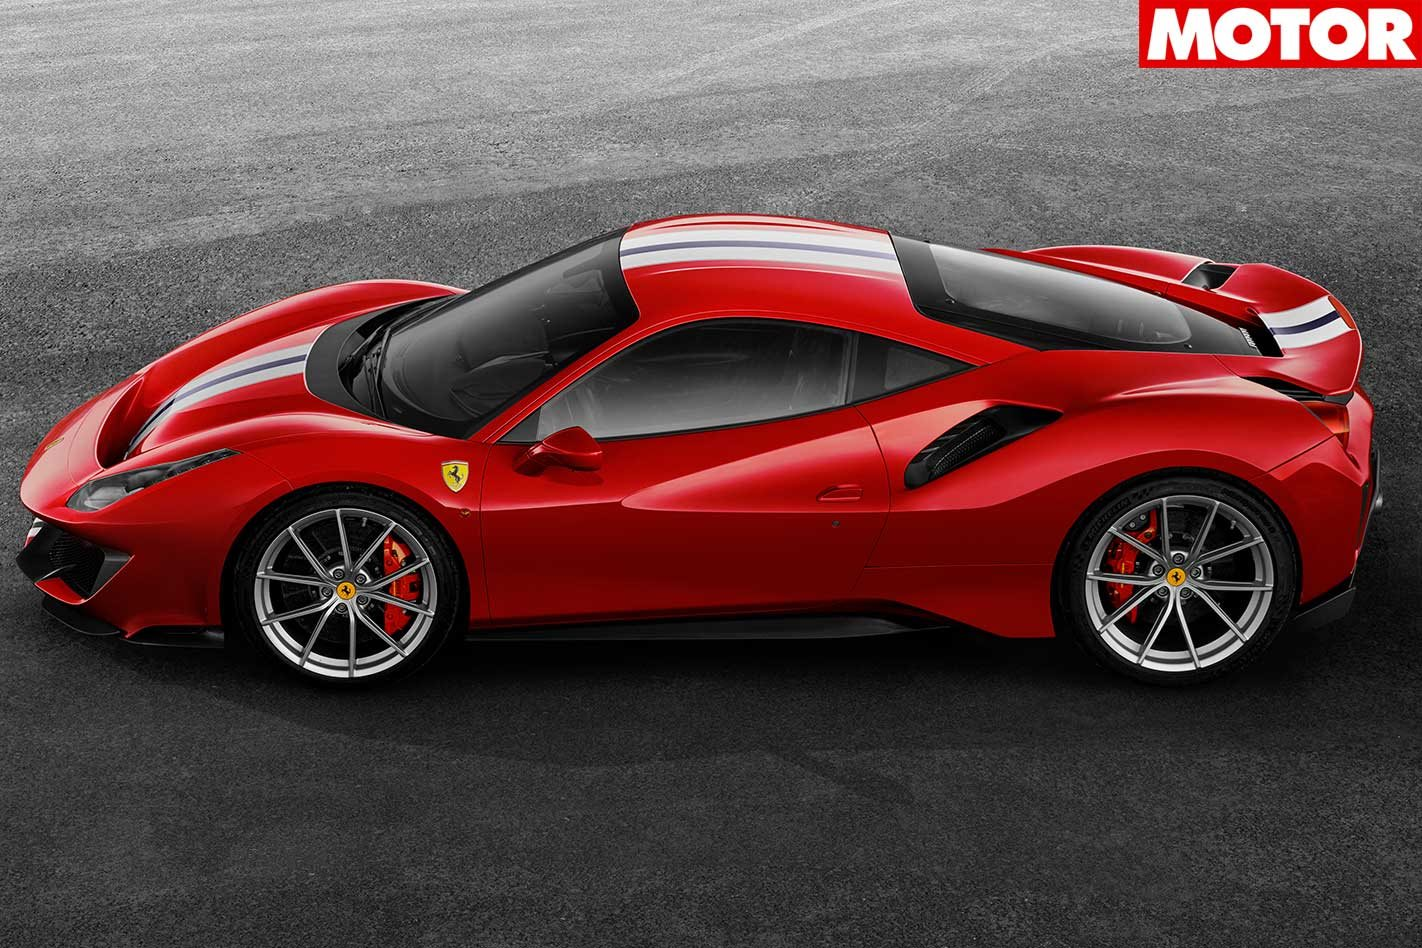 710bhp Ferrari 488 Pista Revealed - The Most Powerful V8 Prancing Horse Ever